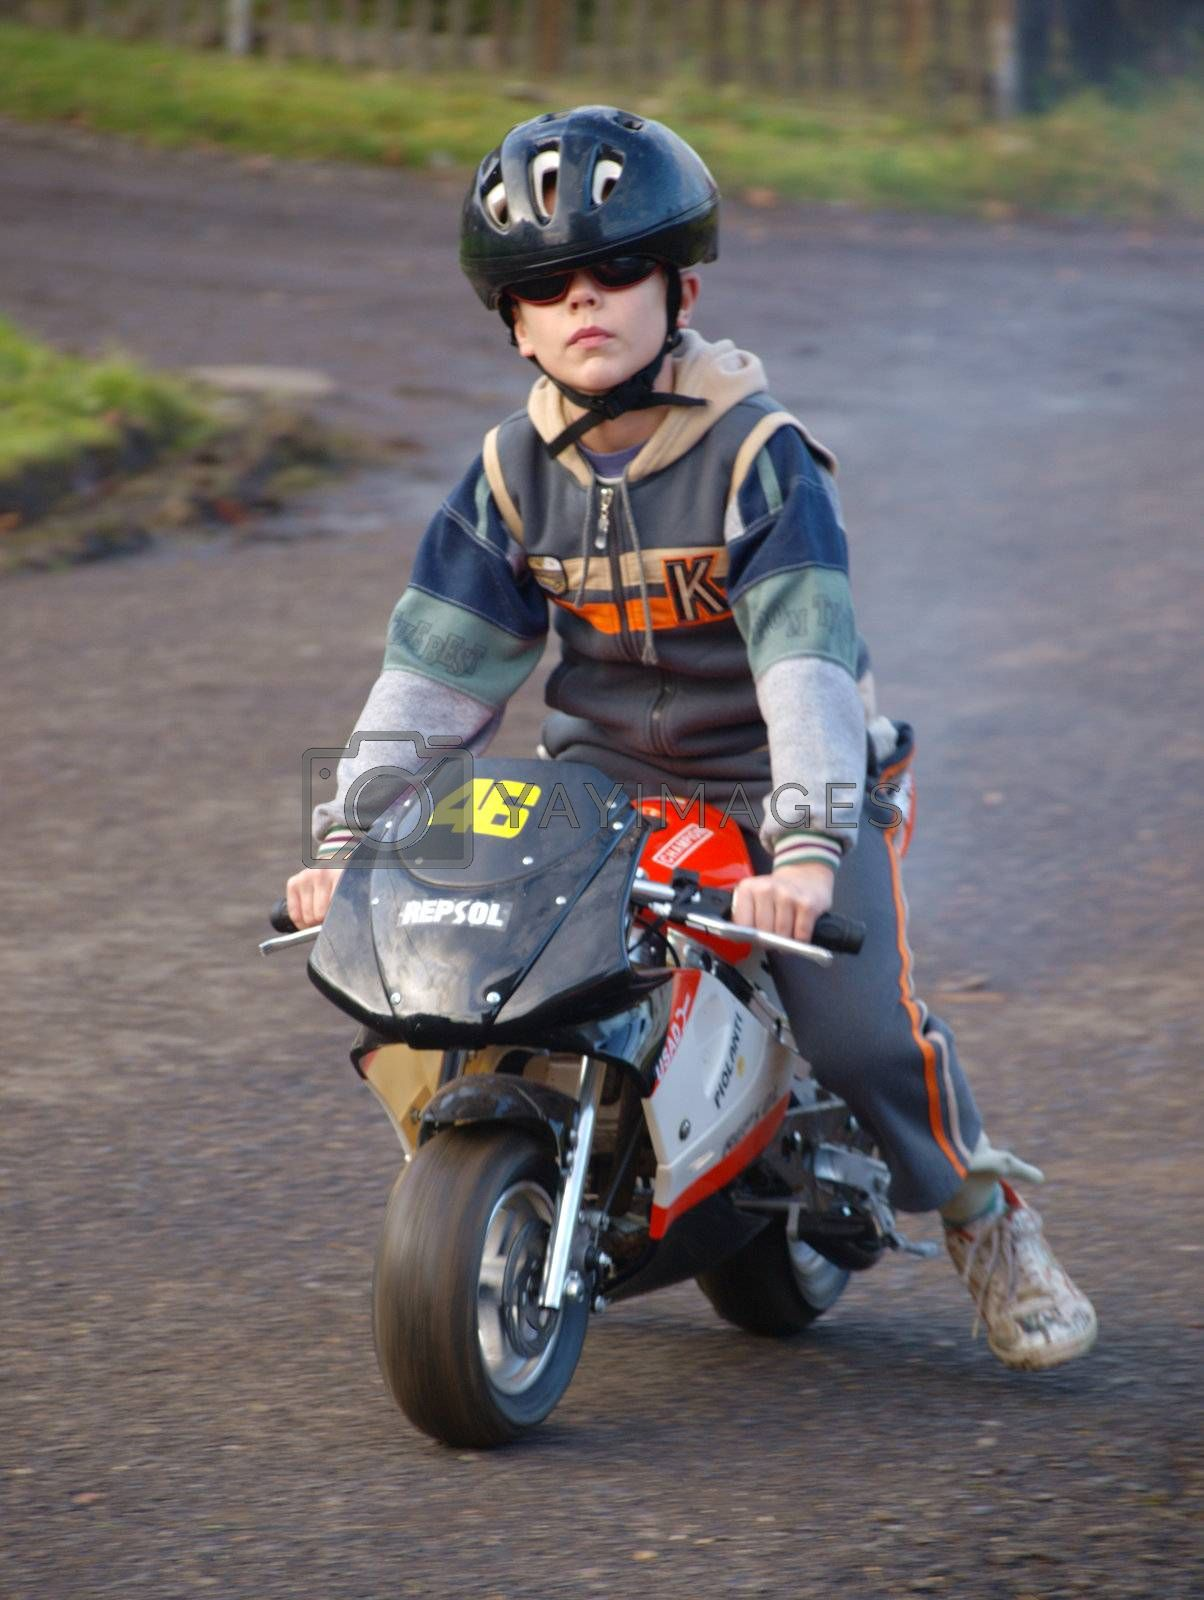 small biker on the road